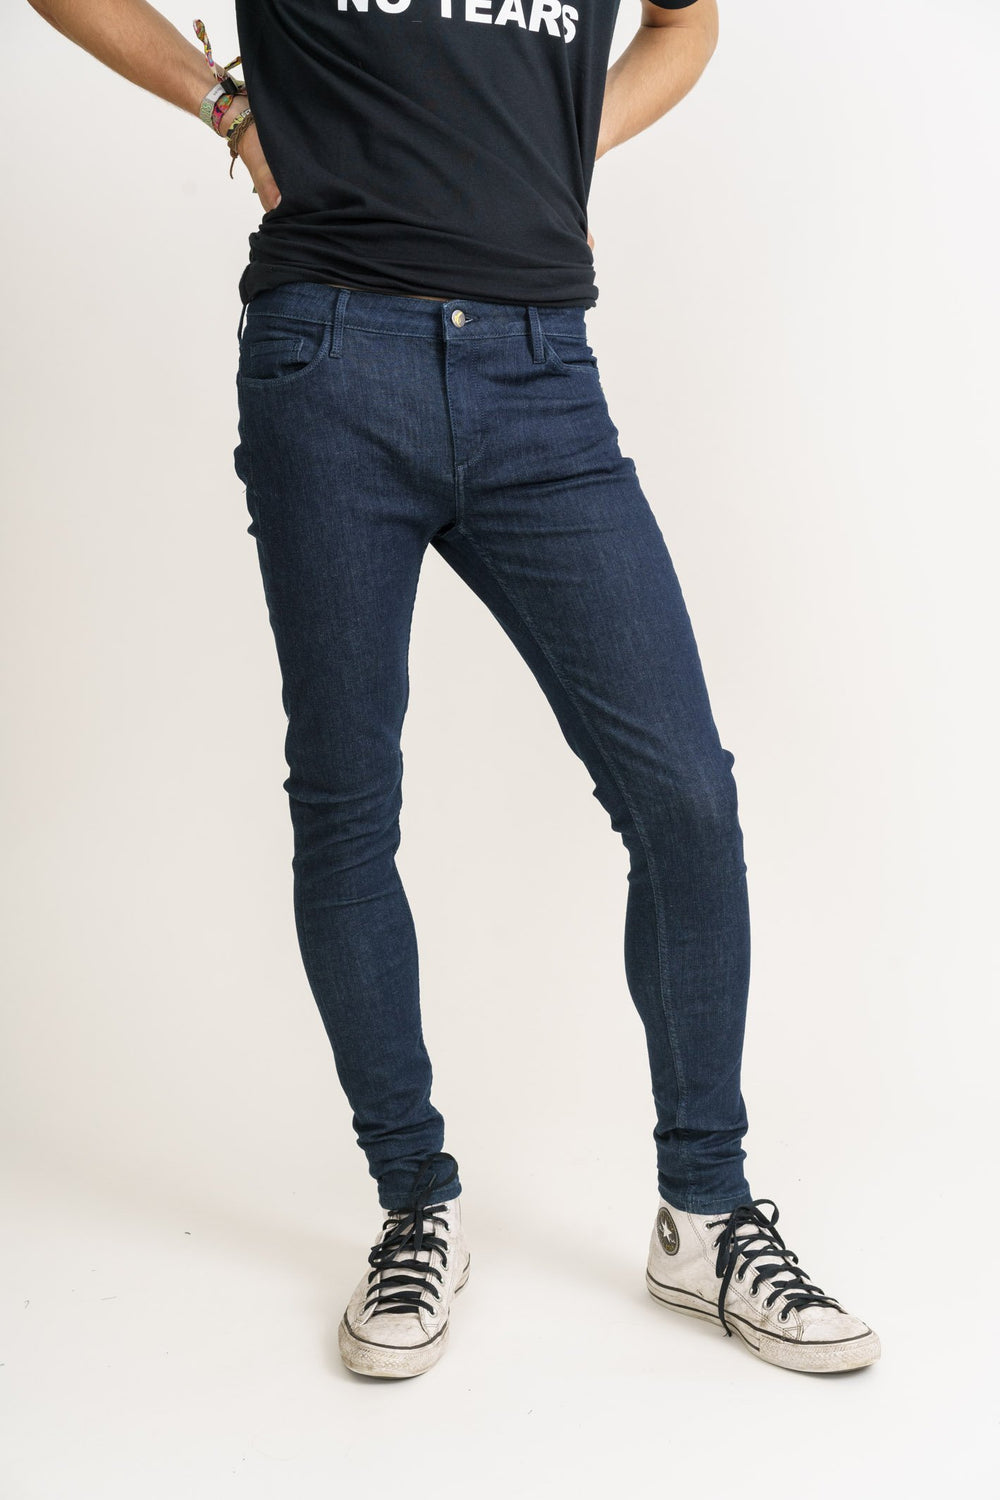 Organic Flex Super Skinny Jeans in Rinse Wash - Monkee Genes Organic Jeans Denim - Men's Silhouette Monkee Genes Official  Monkee Genes Official